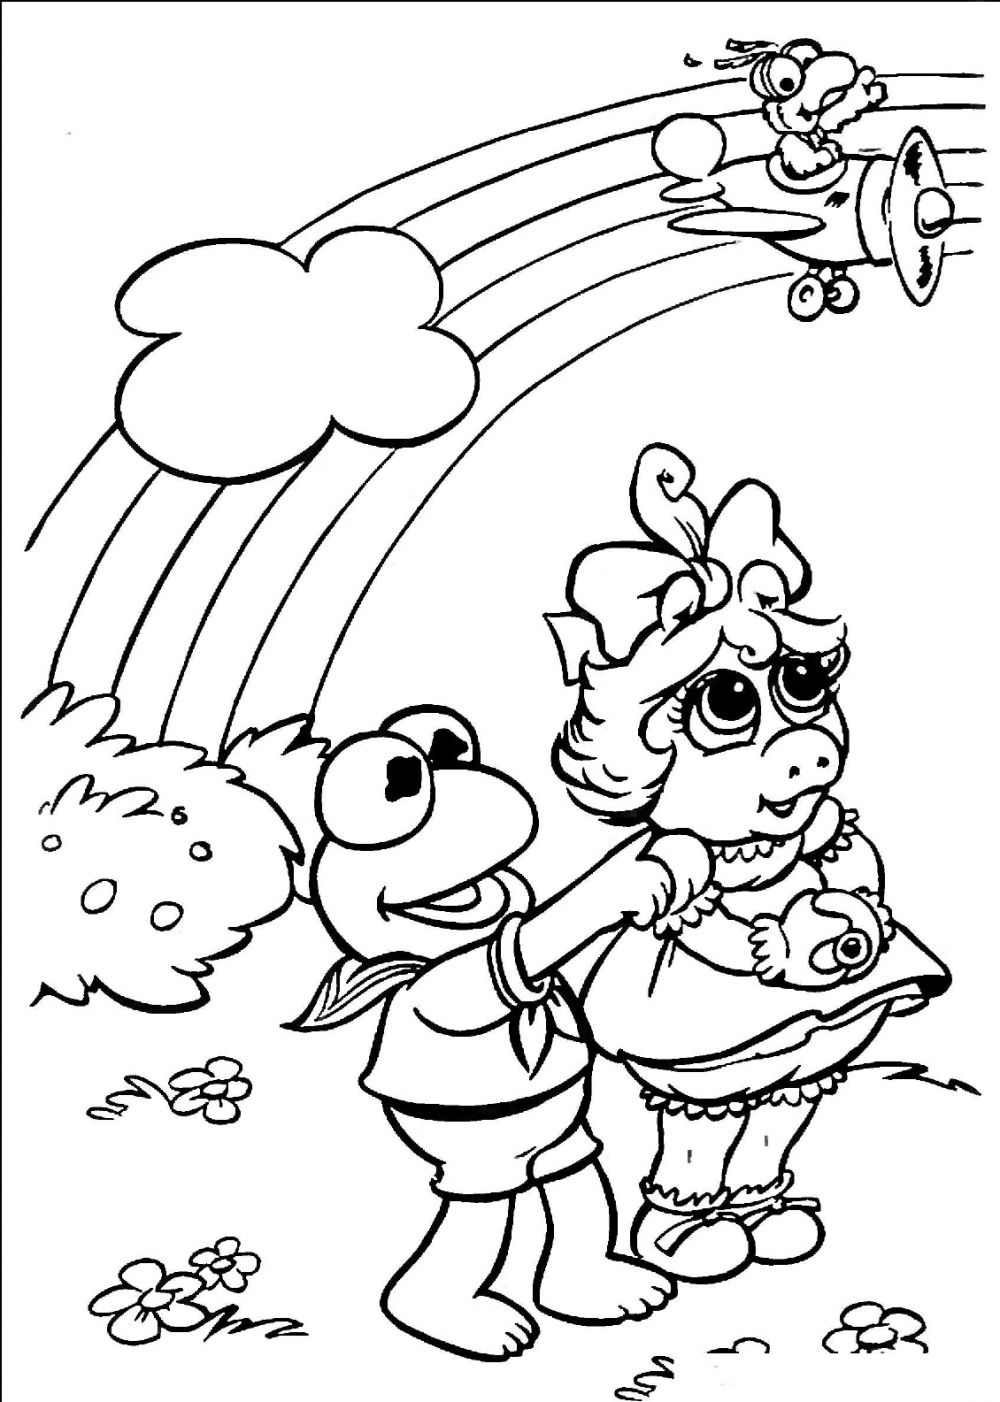 coloring printouts for kids cute coloring pages best coloring pages for kids kids coloring printouts for